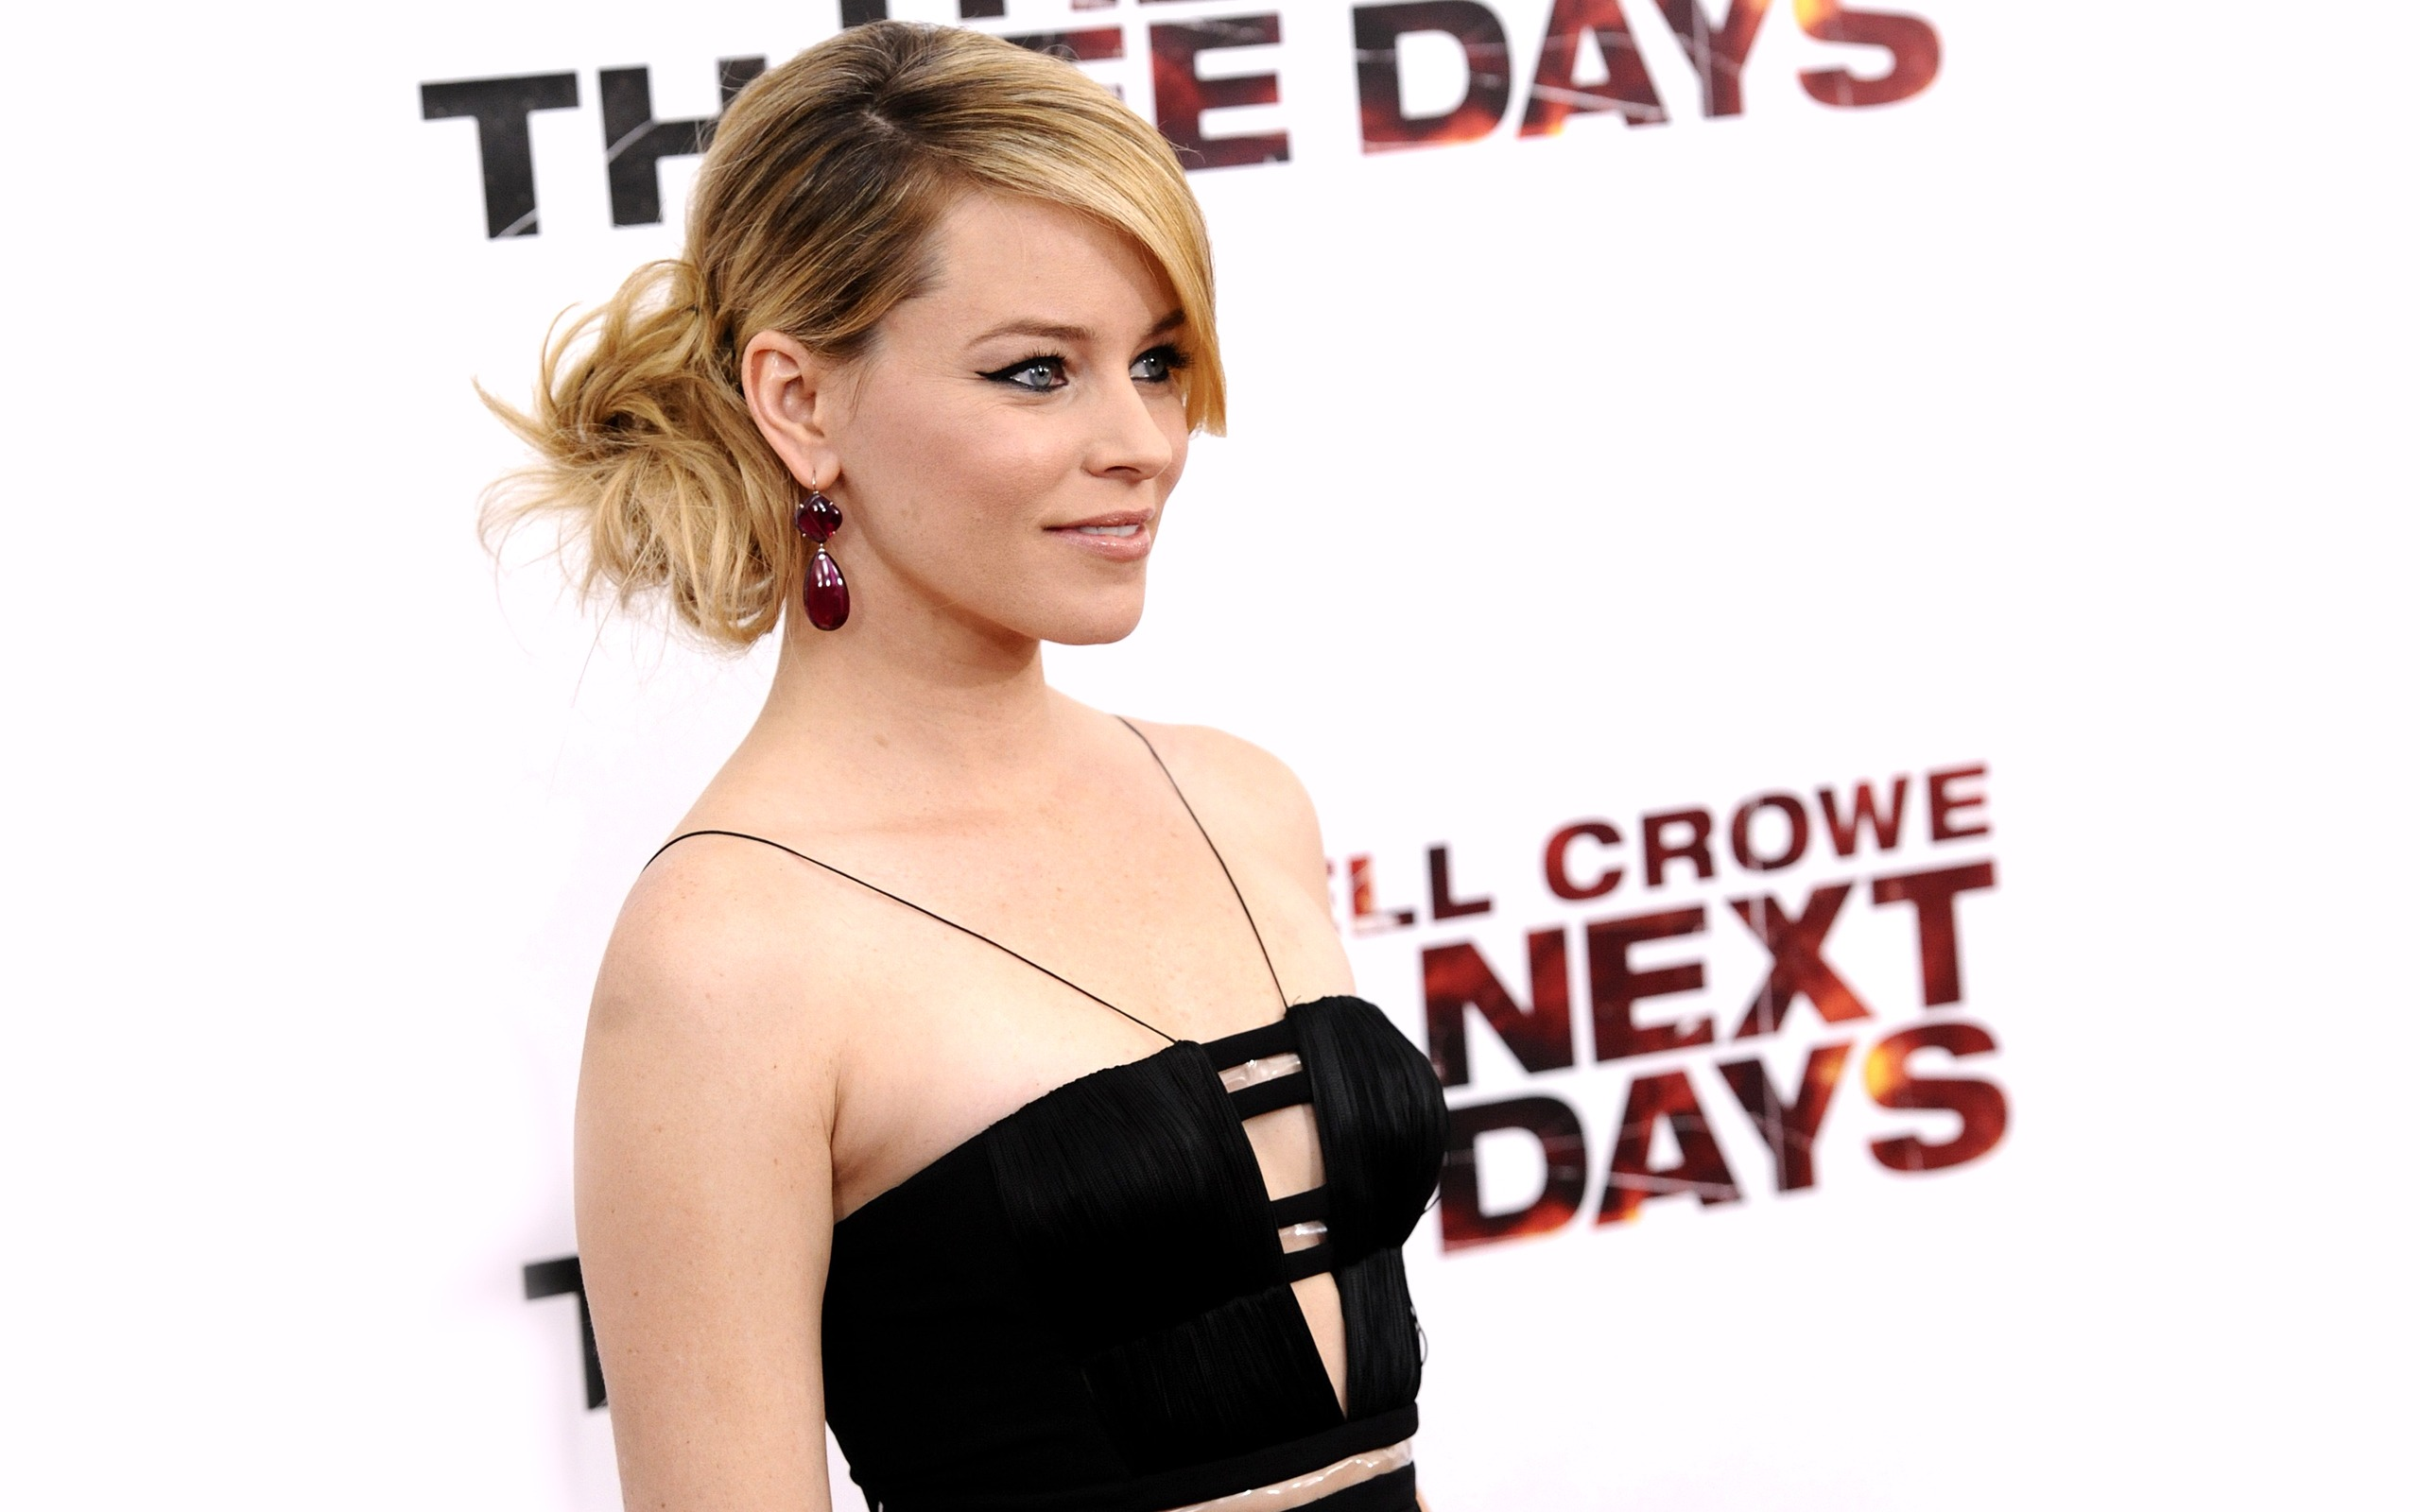 Elizabeth Banks #002 - 2560x1600 Wallpapers Pictures Photos Images